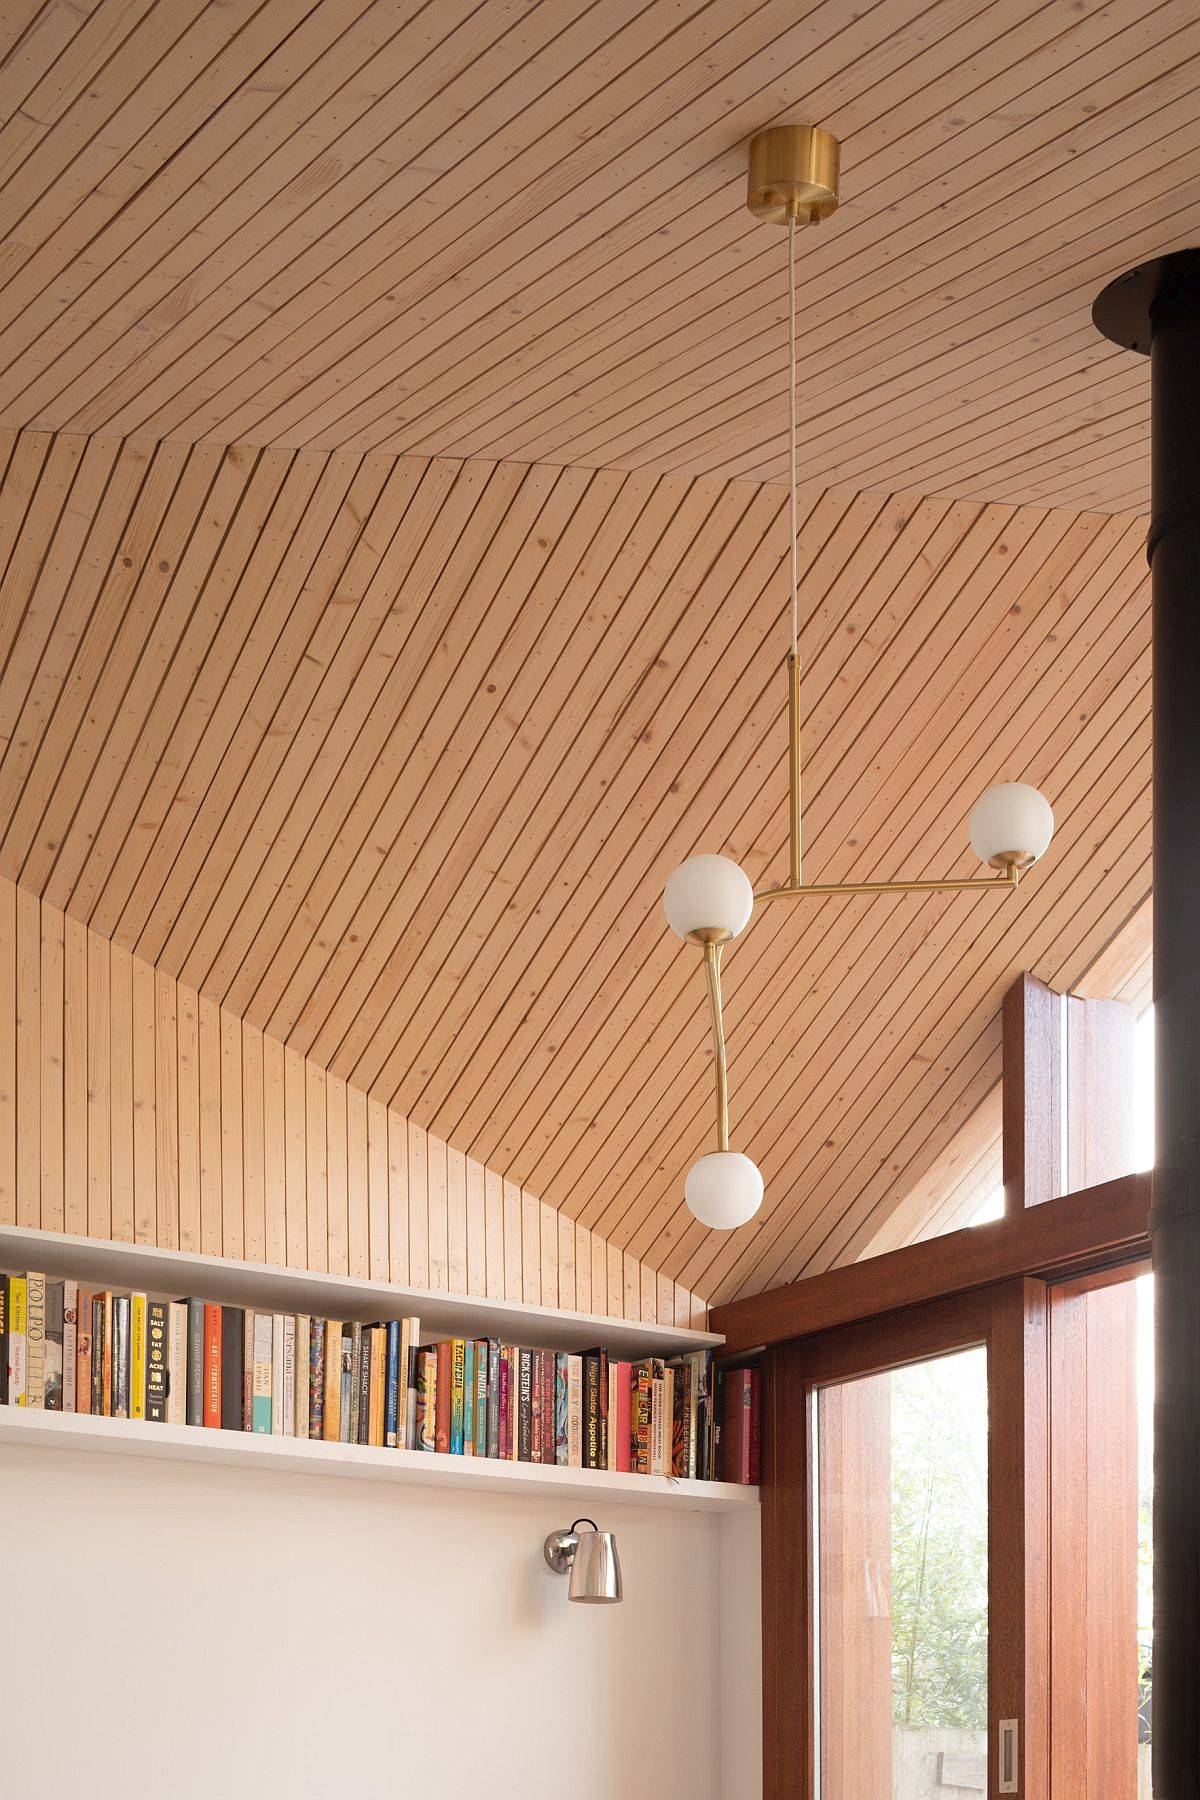 Custom-wooden-ceiling-of-the-extension-allows-in-filtered-light-throughout-the-day-62981